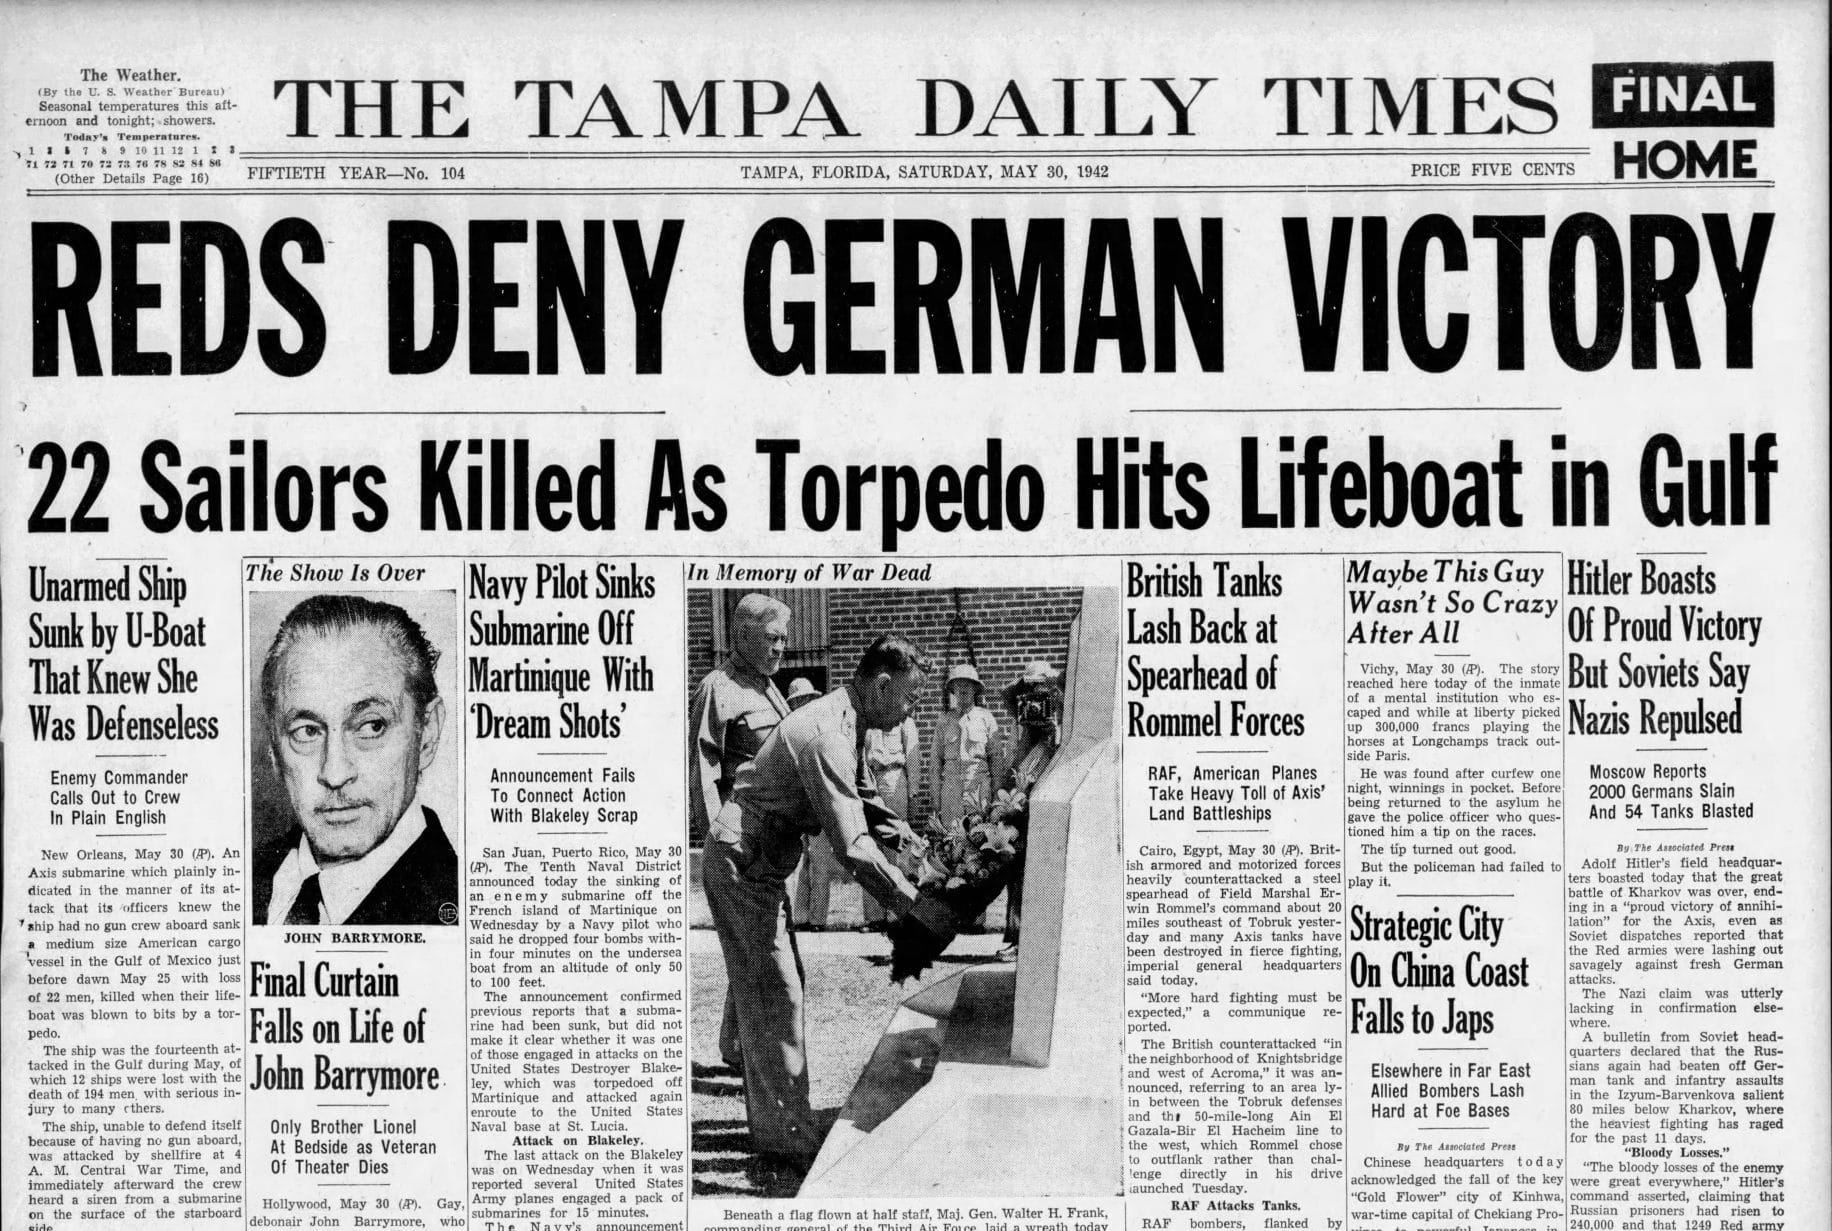 Nazi submarines brought the fight to Florida during WWII